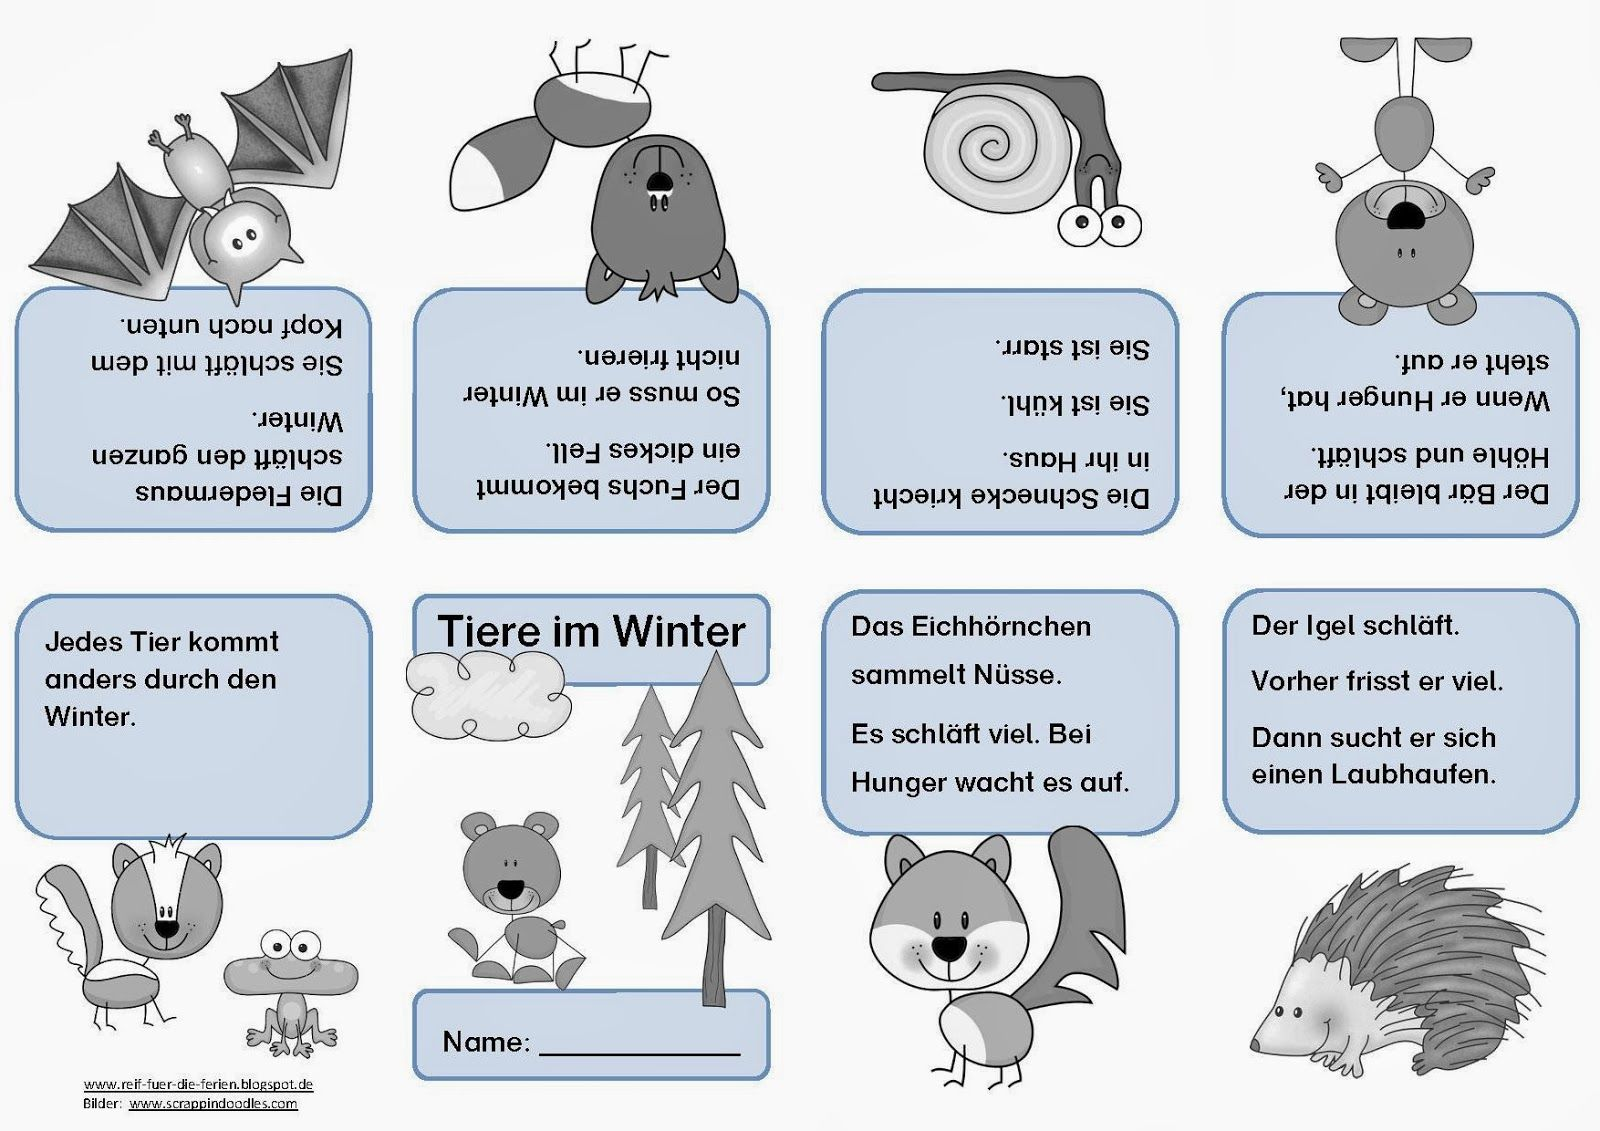 Tiere im Winter - Faltheft | Kindergarten | Pinterest | Winter, Tier ...